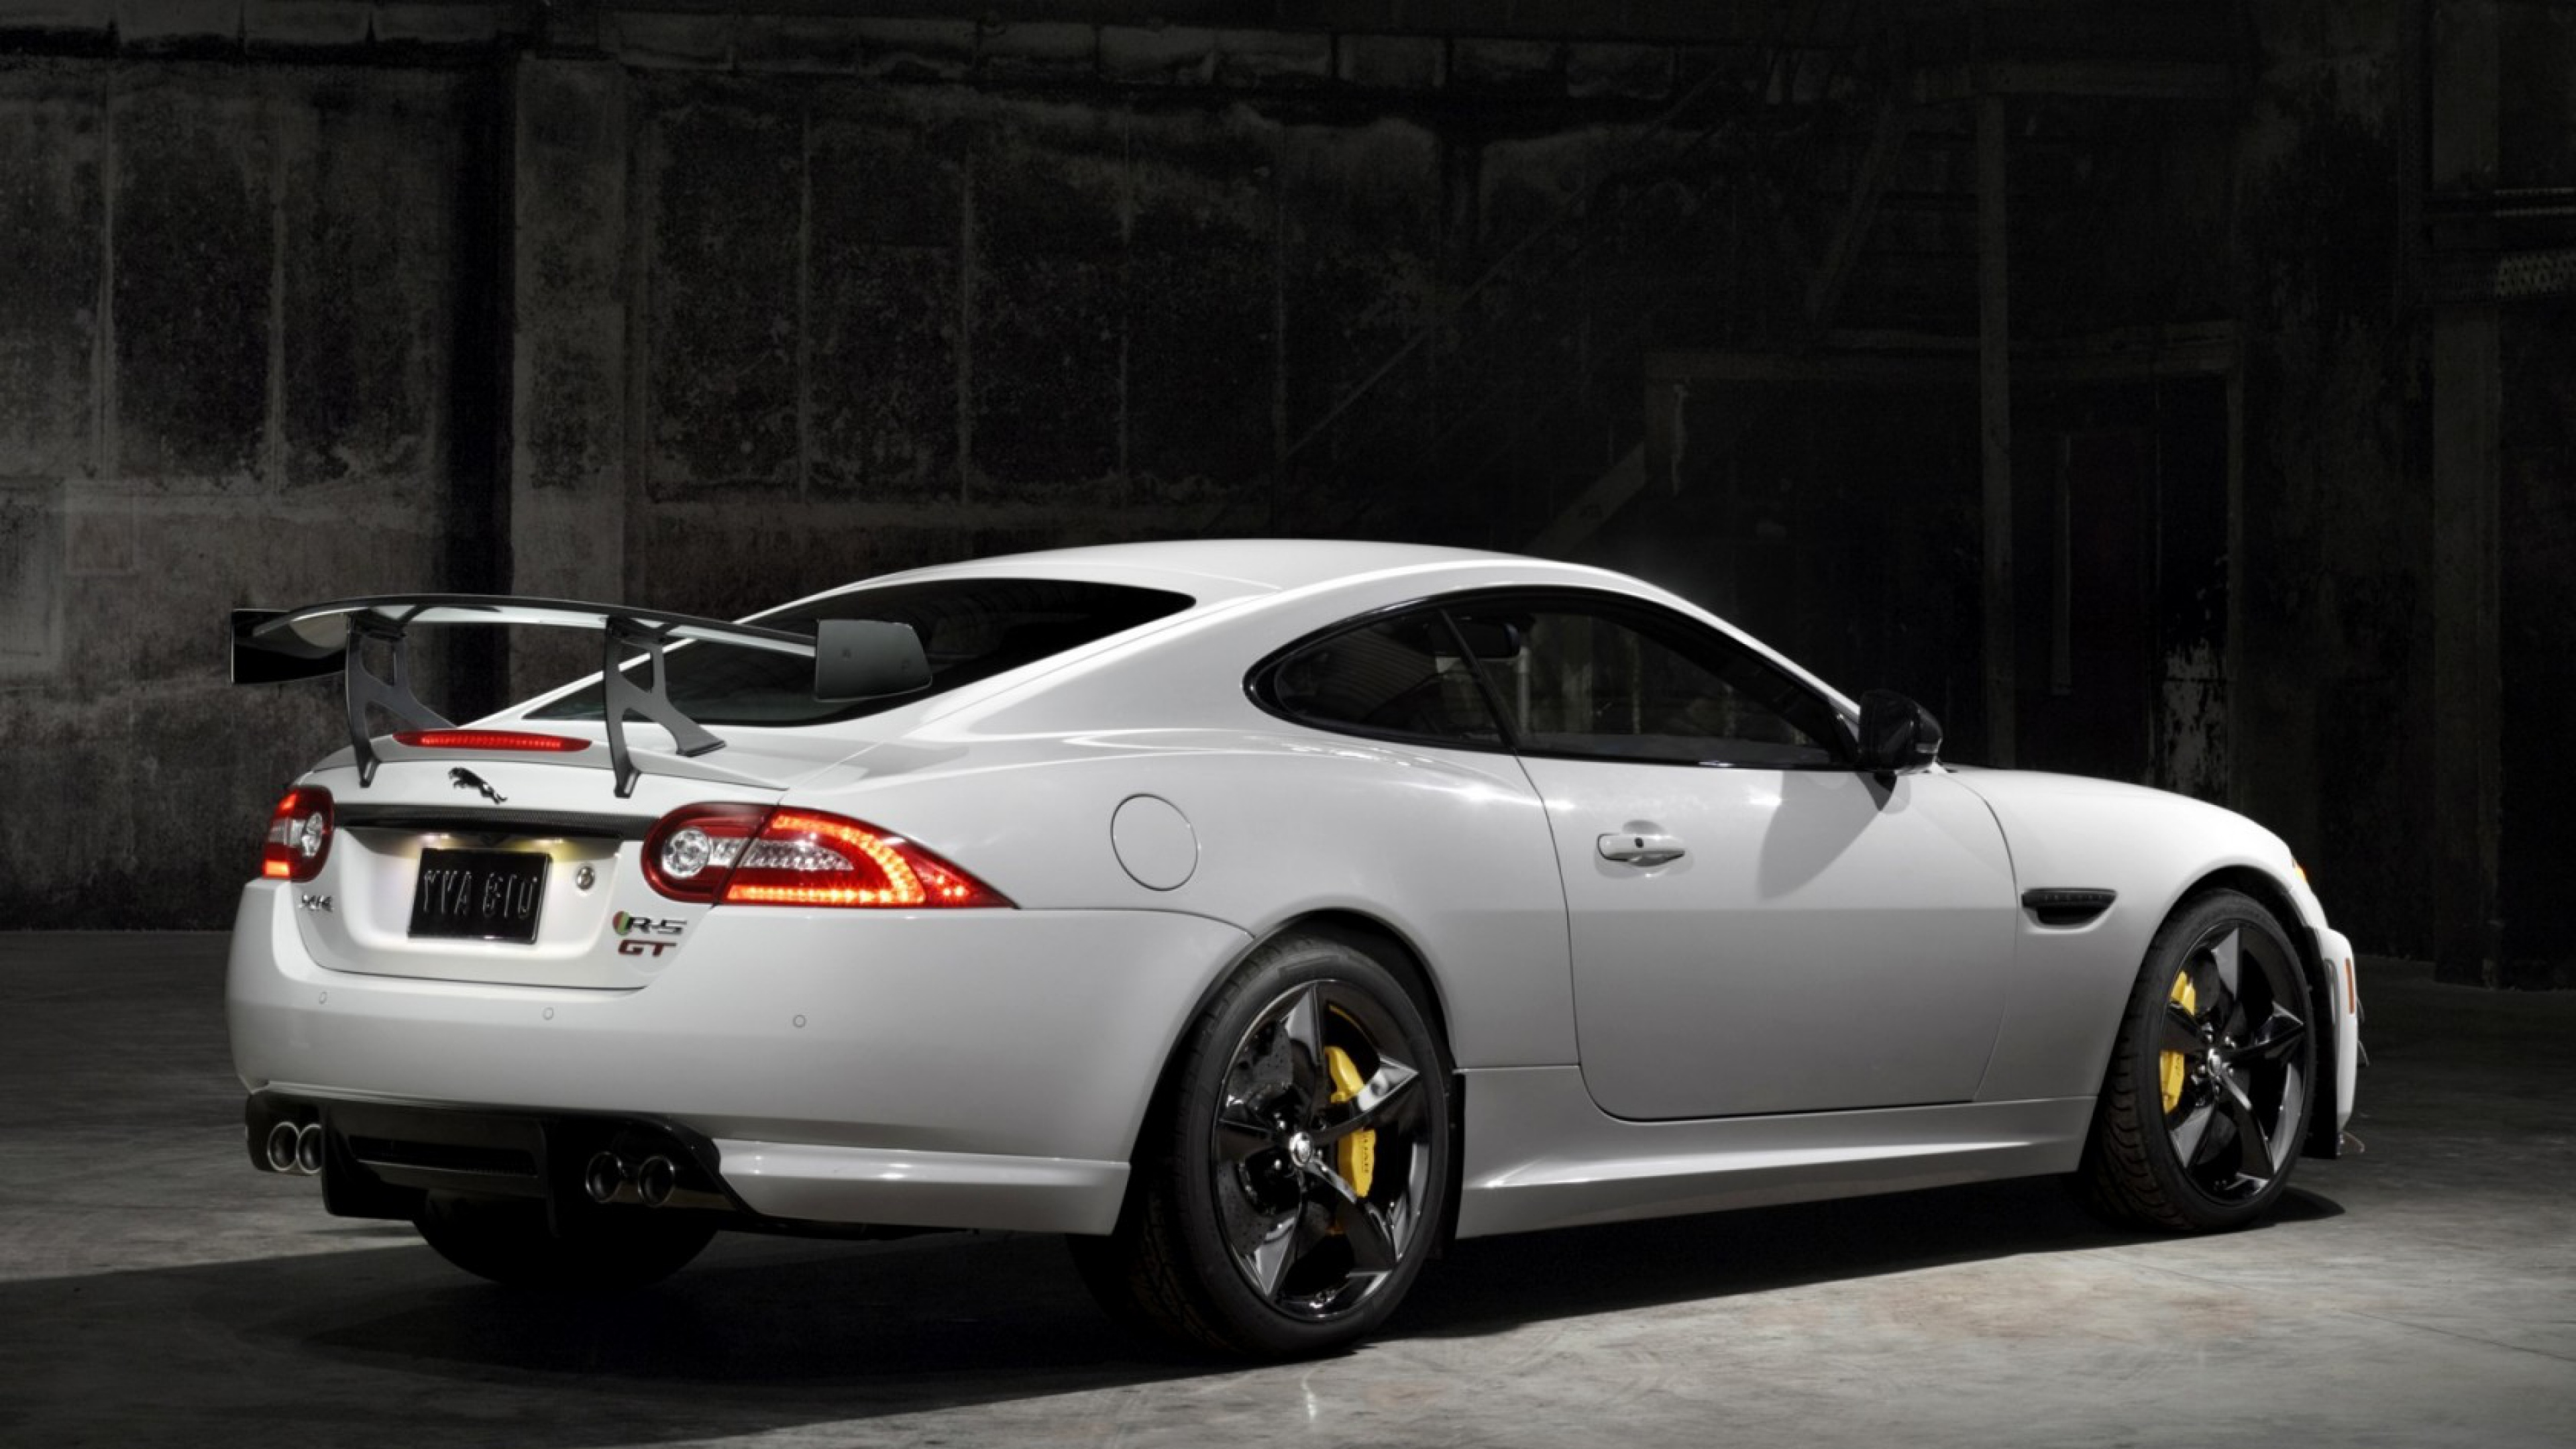 White Jaguar Car Wallpaper Full Hd Cars Hd Wallpaper